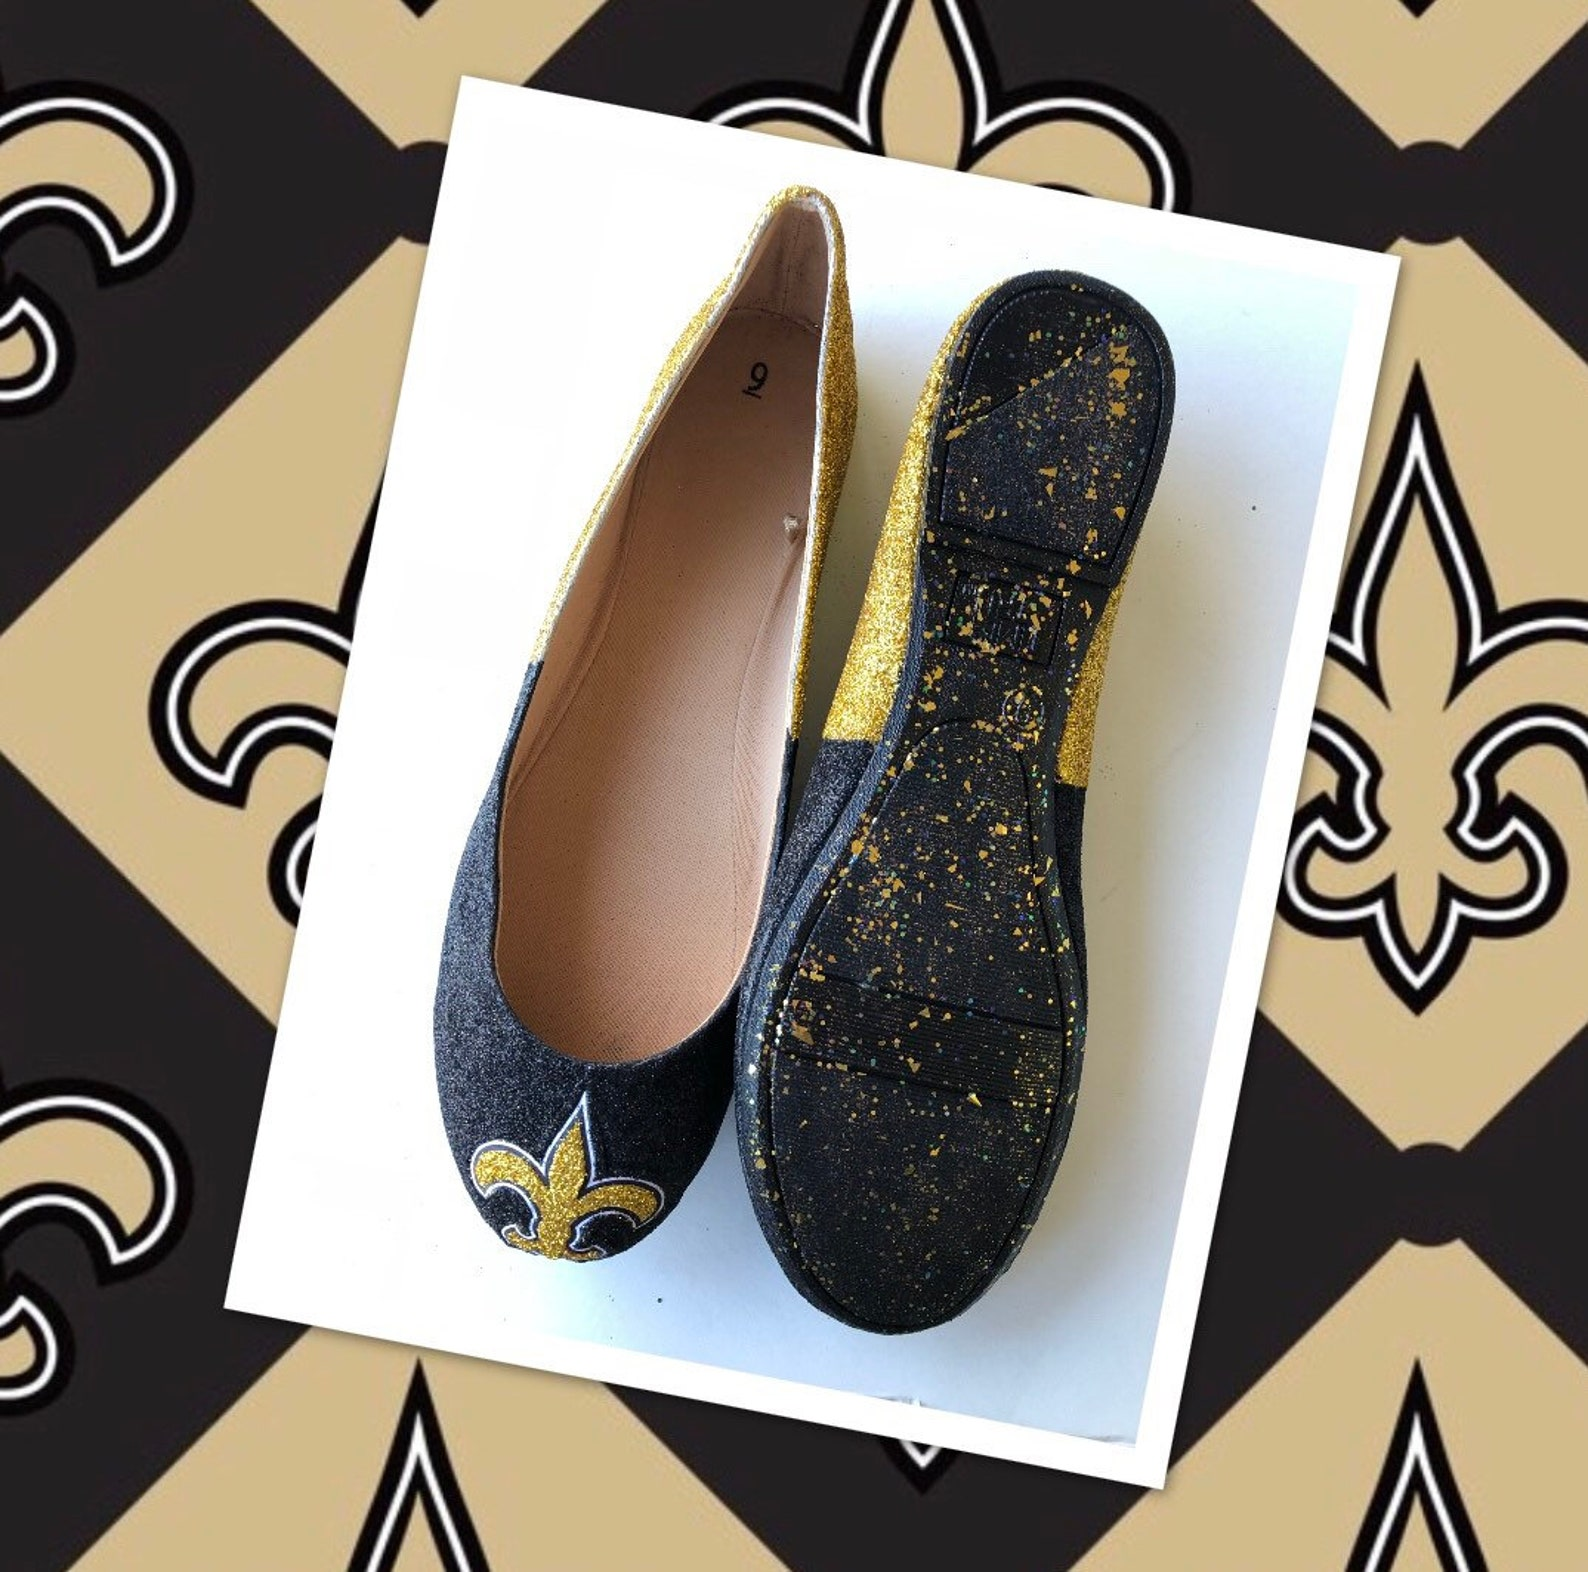 saints flats custom women's new orleans gold and black glitter fan ballet shoes *free u.s. shipping* jco.customs by kitty pa